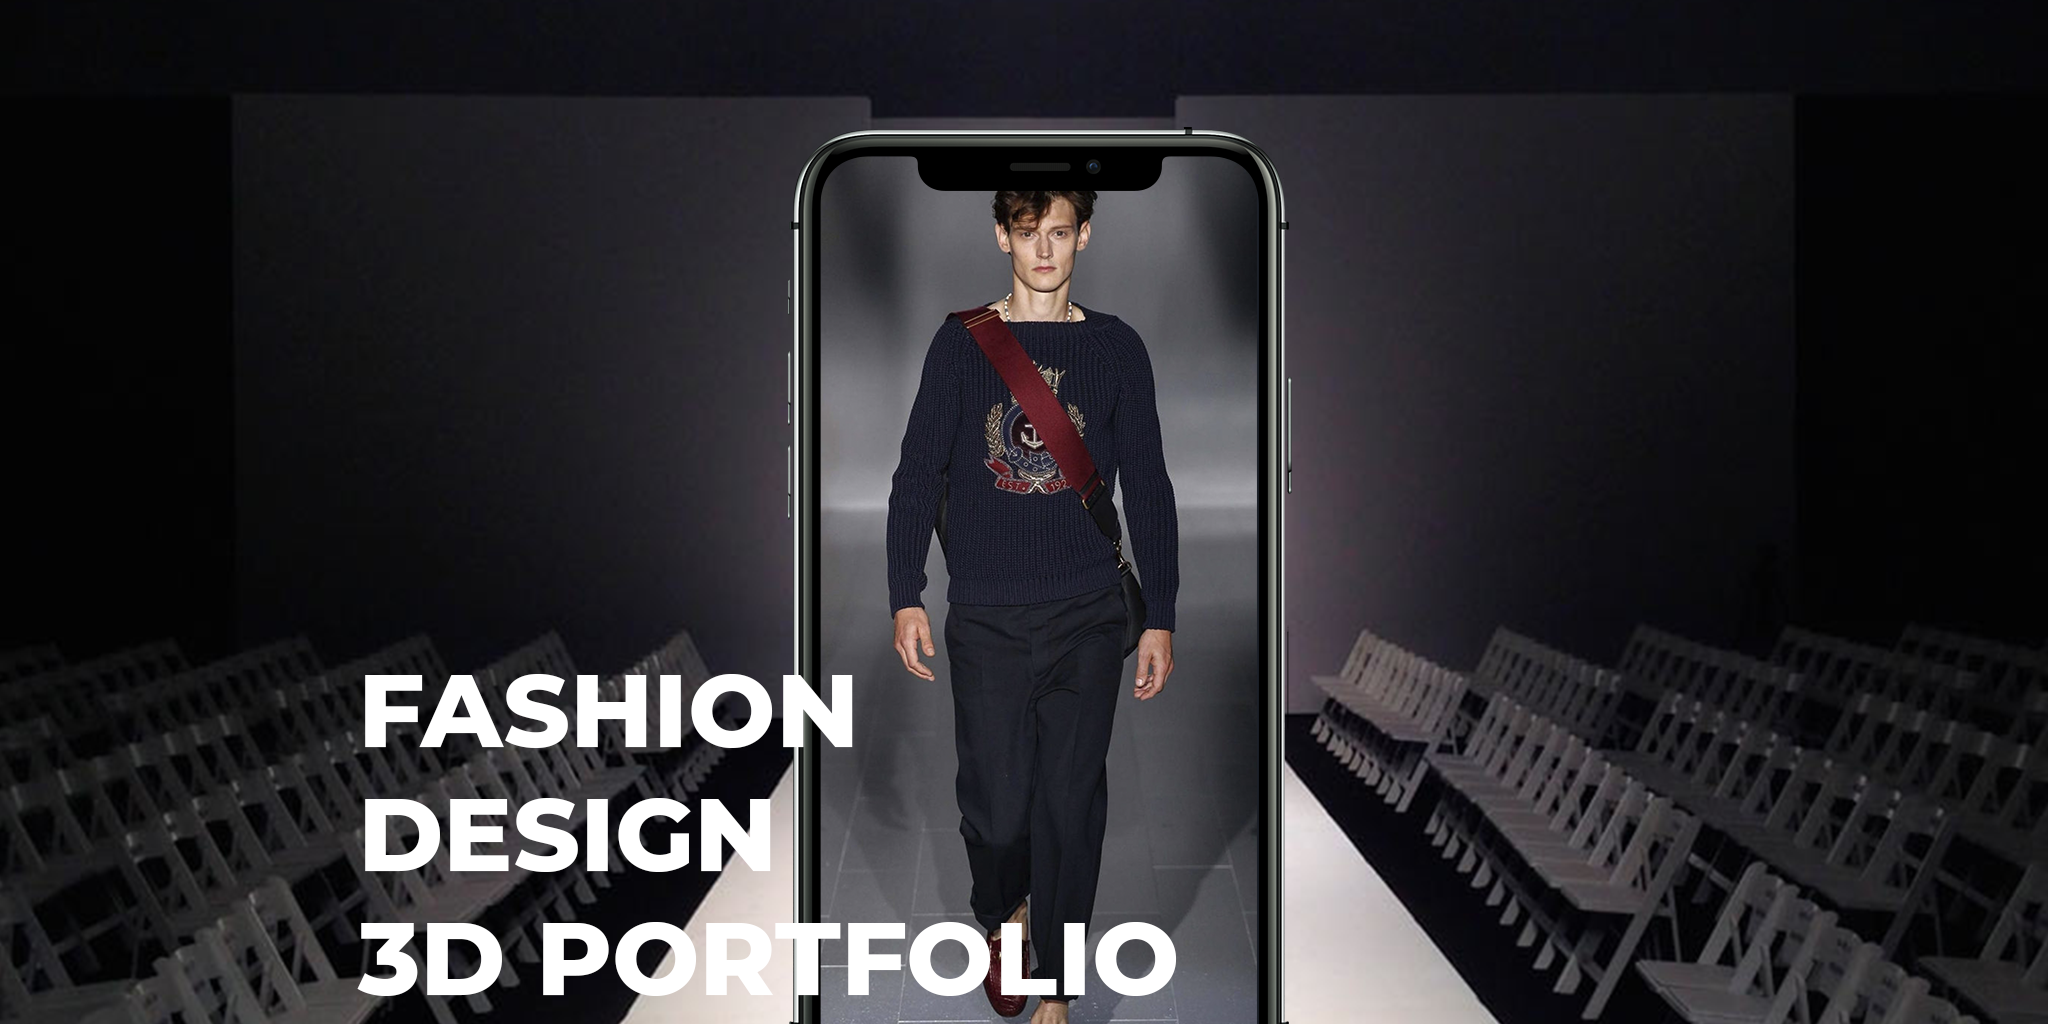 Fashion Shows Cancelled Emerging Designers Move To Digital Portfolios By Cappasity Cappasity Blog Medium